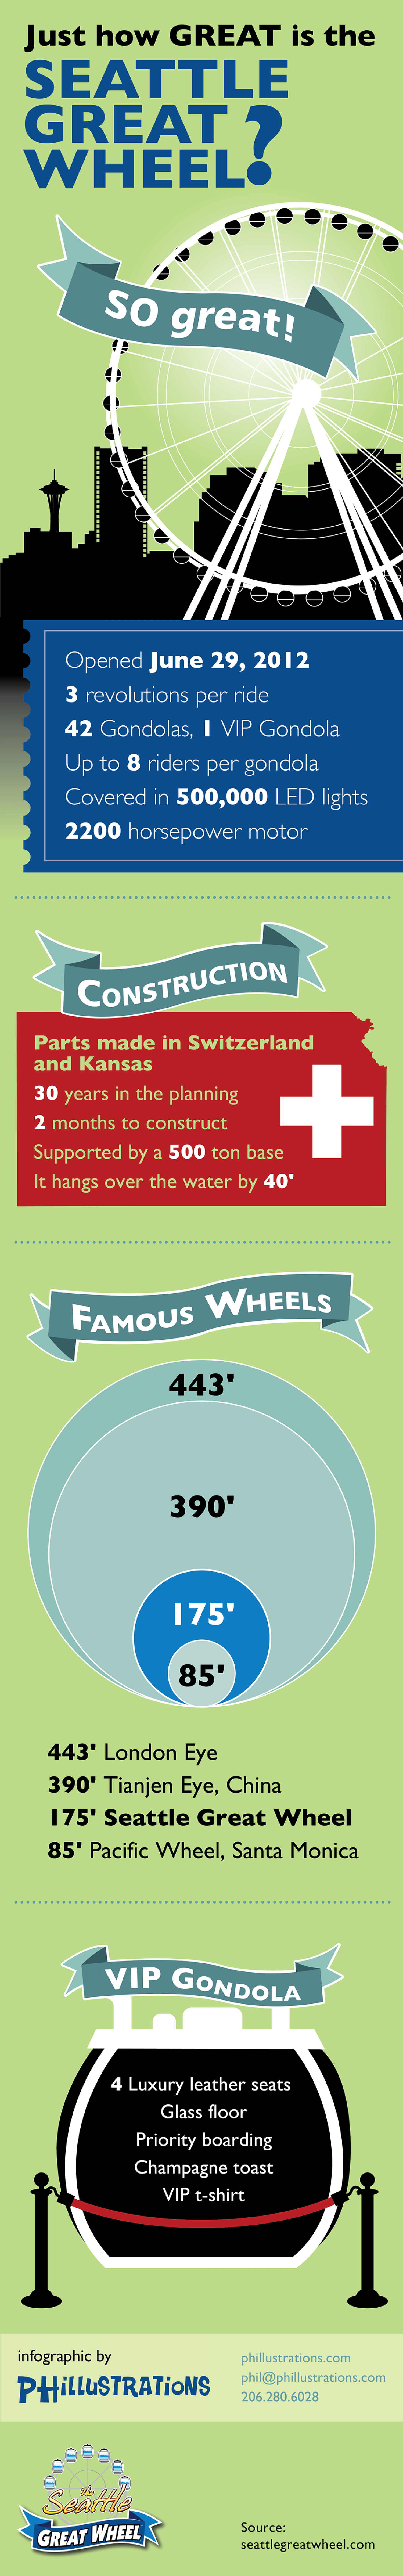 How great is the Seattle Great Wheel? Infographic